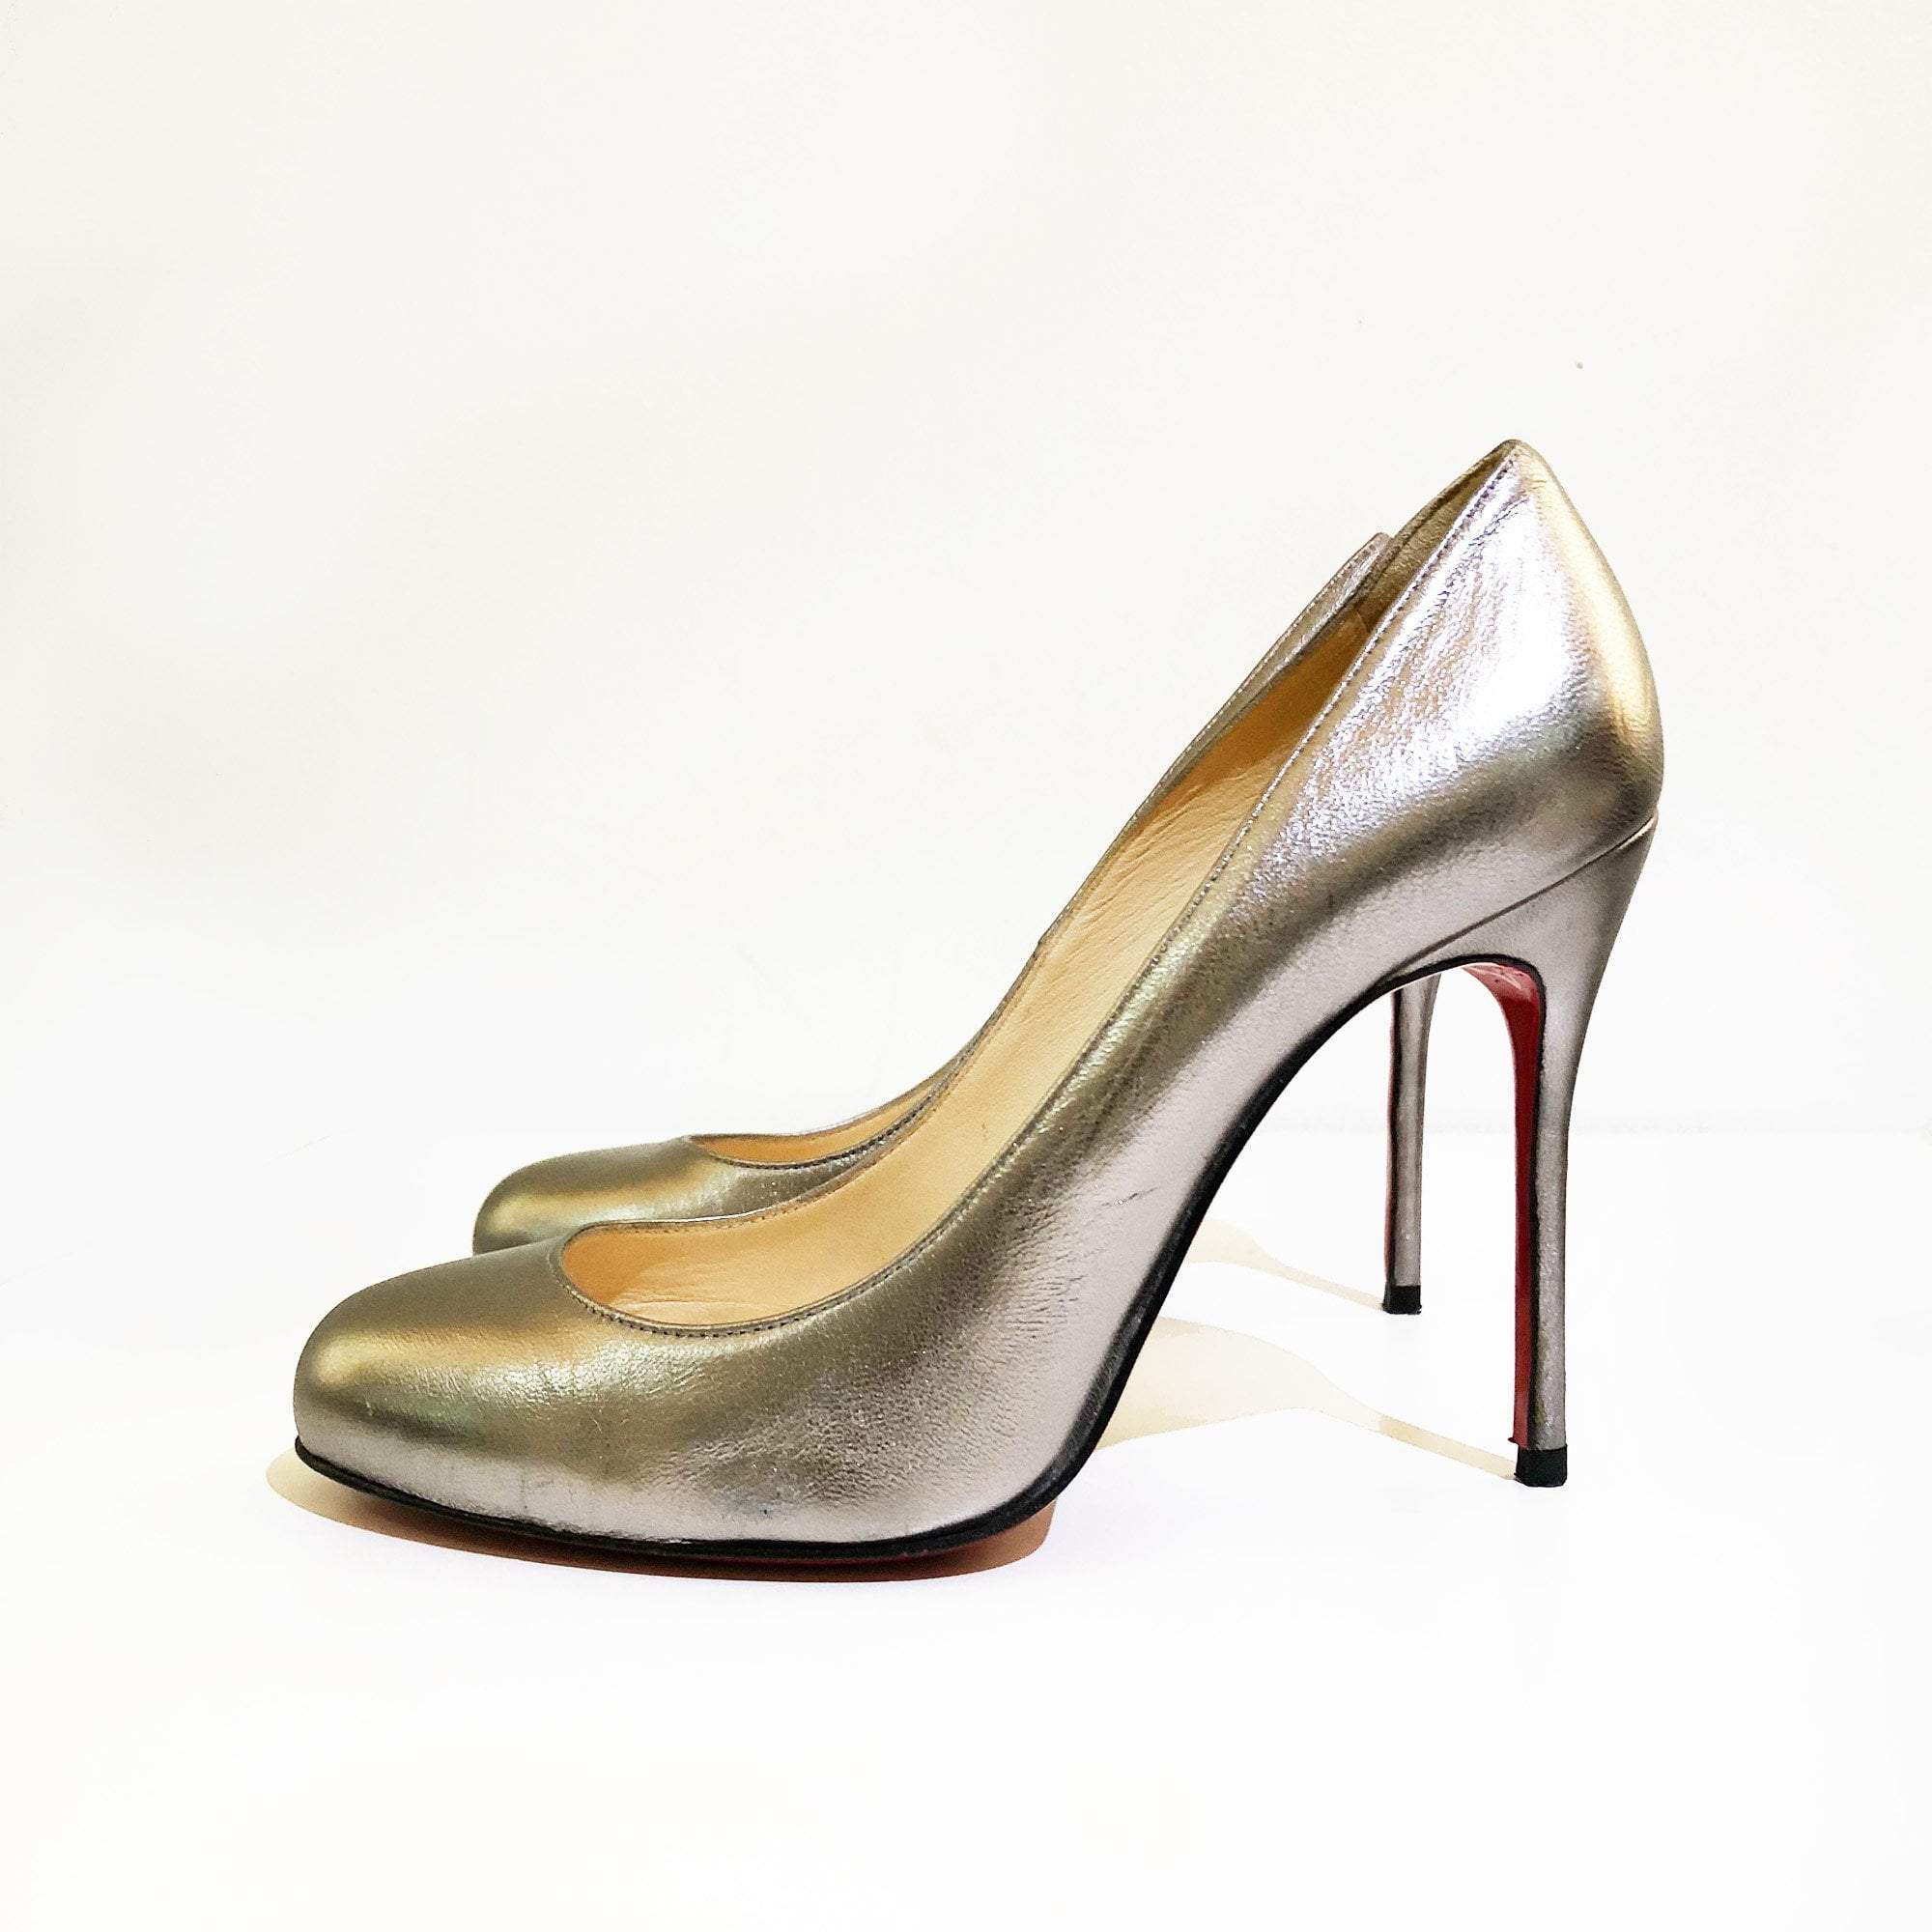 buy cheap under $60 Christian Louboutin Metallic-Trimmed Round-Toe Pumps sale best sale shop for sale online shop sale online i9CyhZpSx